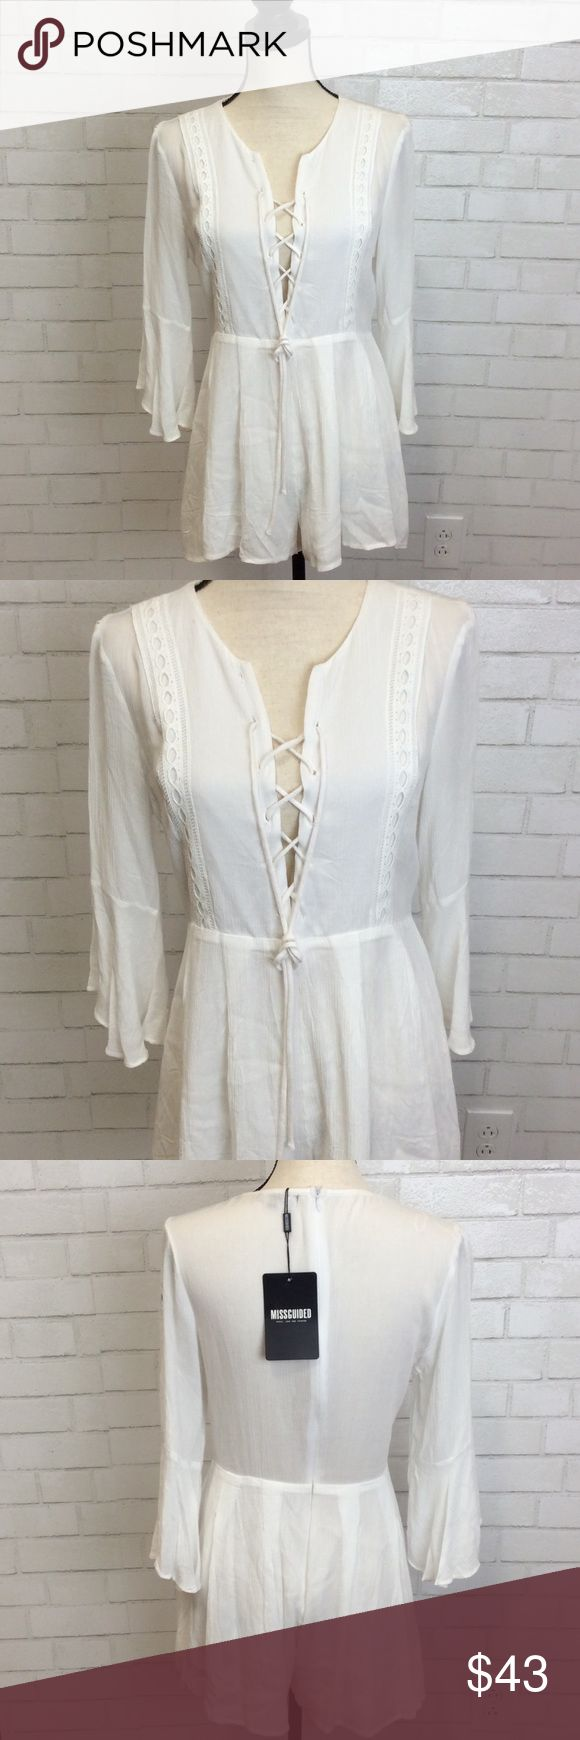 "MISGUIDED Lace-up White Bell Sleeve Romper This romper has a sexy or modest option. Lace up or keep loose! Romper has feminine lace on front and its arms. Very pretty modest bell sleeves and zip up back. Size 8. 100% Polyester. Measurements: Shoulders: approximately 16"" Top to bottom hem approximately 26"" Sleeves reach approximately 16"" at longest point of sleeve Missguided Pants Jumpsuits & Rompers"